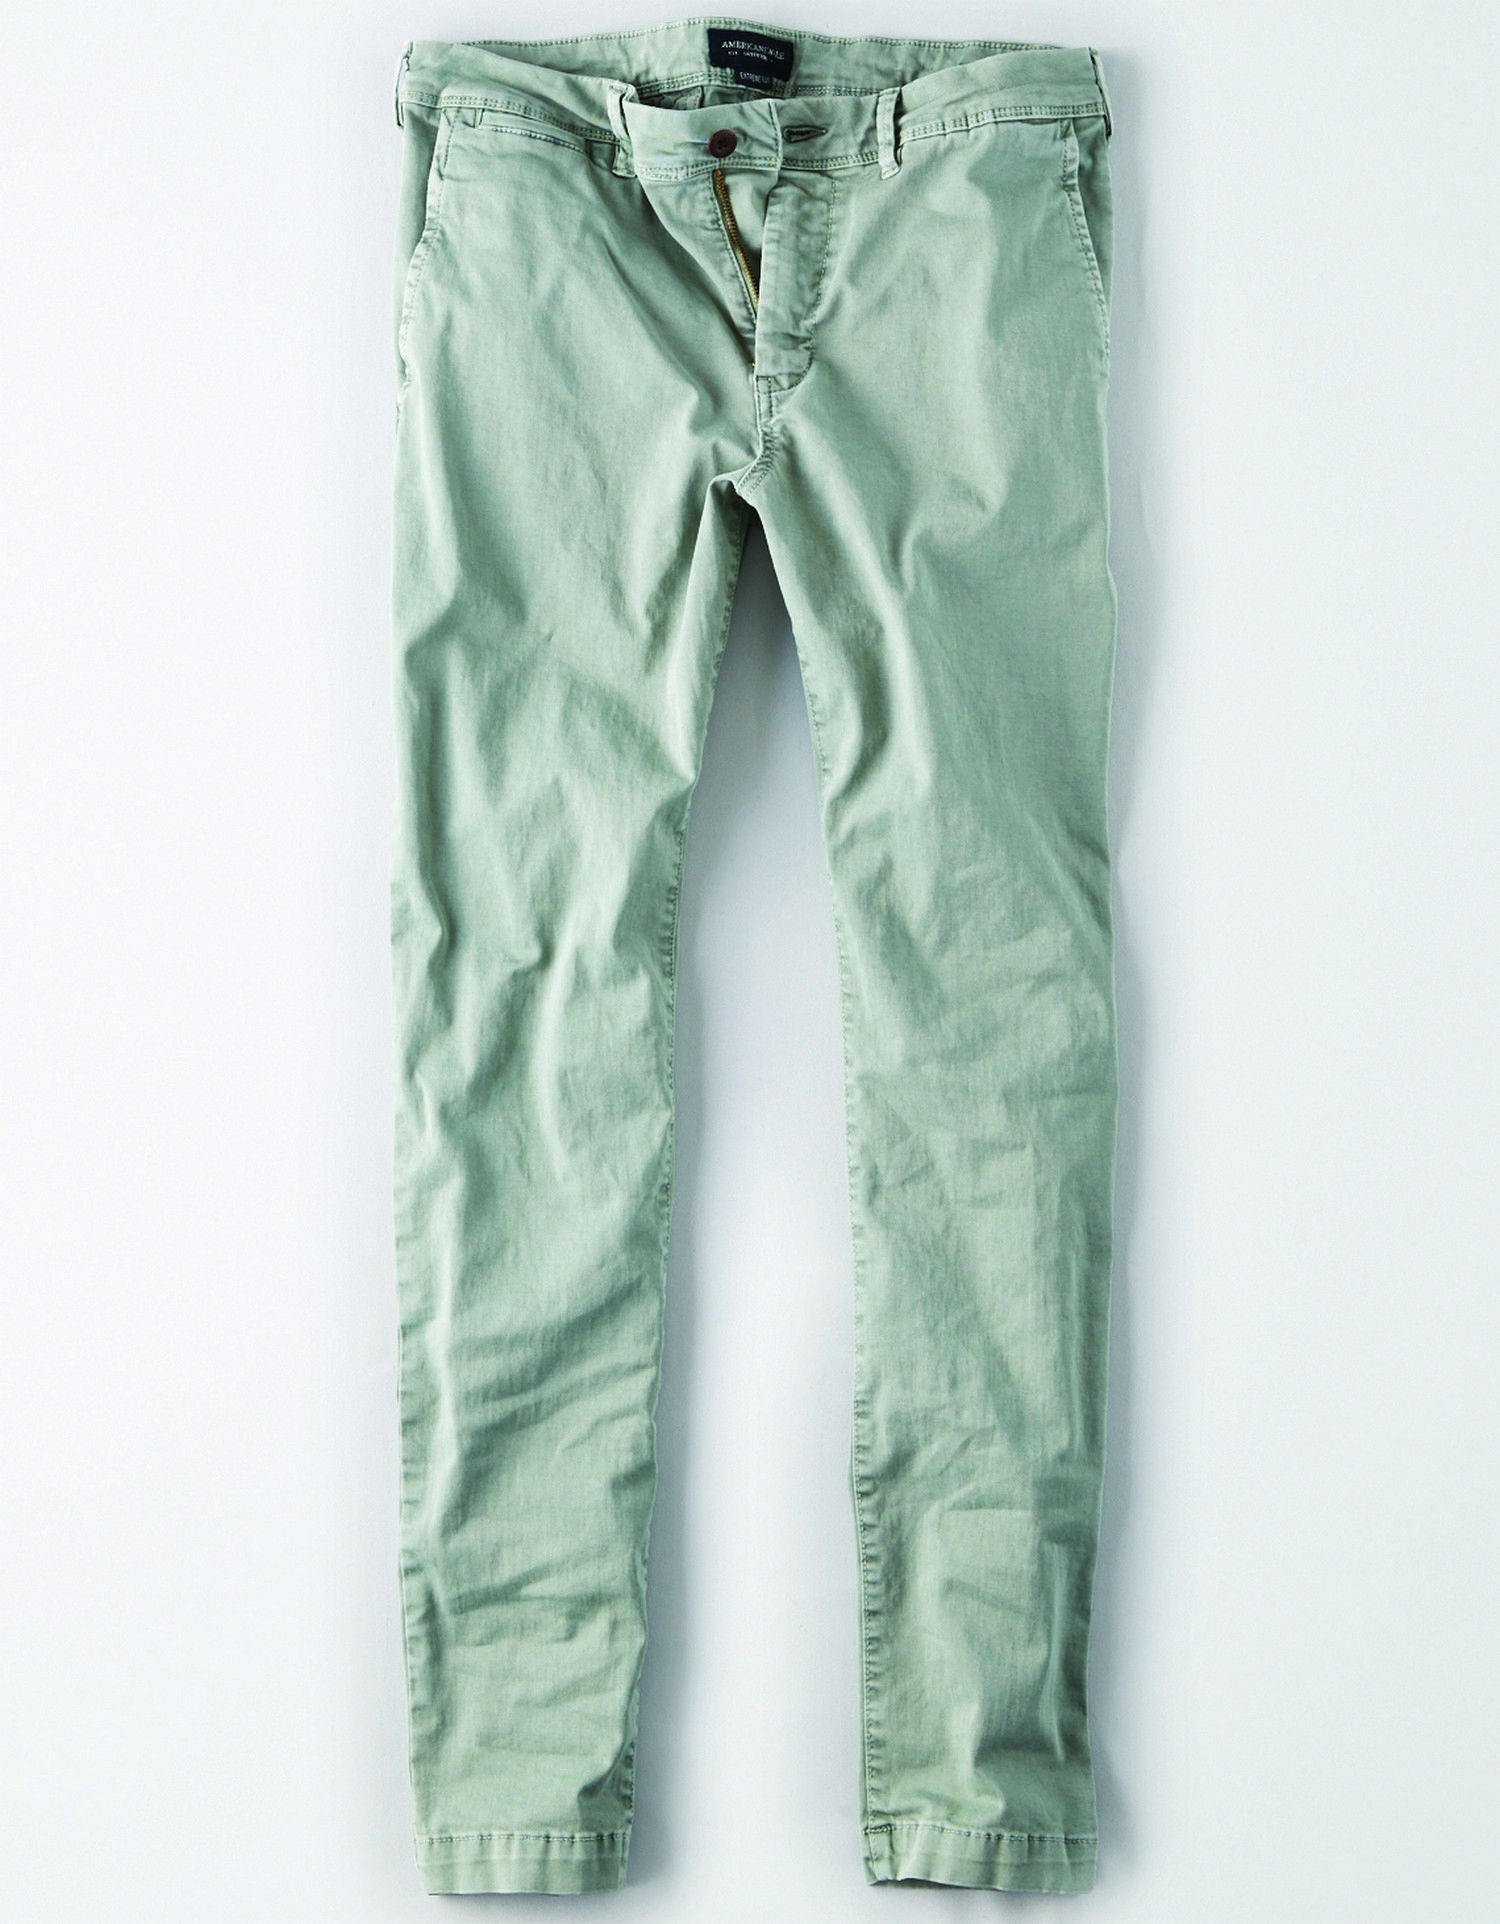 AE - INTL - Apparel - M - Skinny Pant - Light Palm Green - Brown button - extreme Flex KS